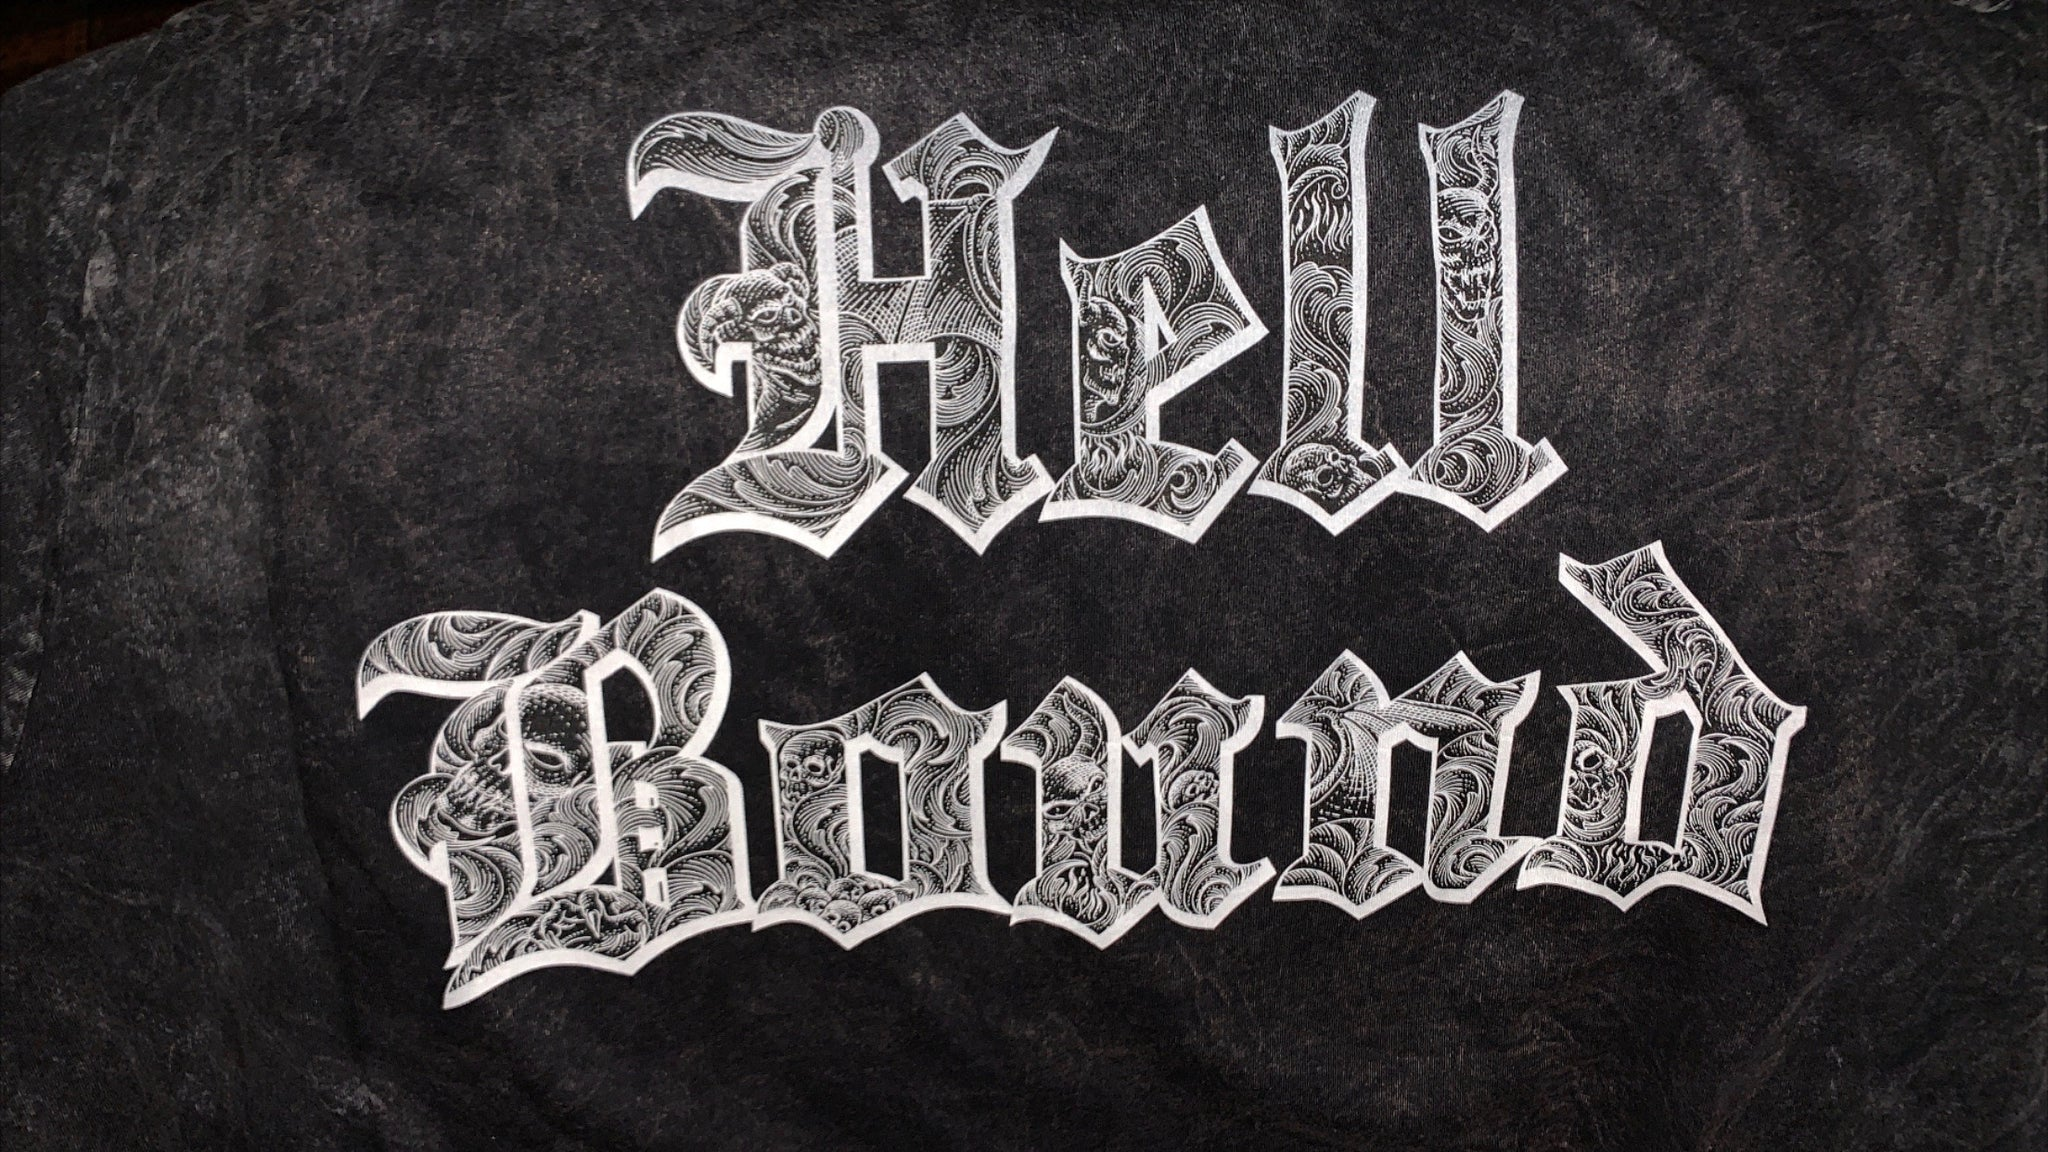 HEAVEN SENT / HELL BOUND